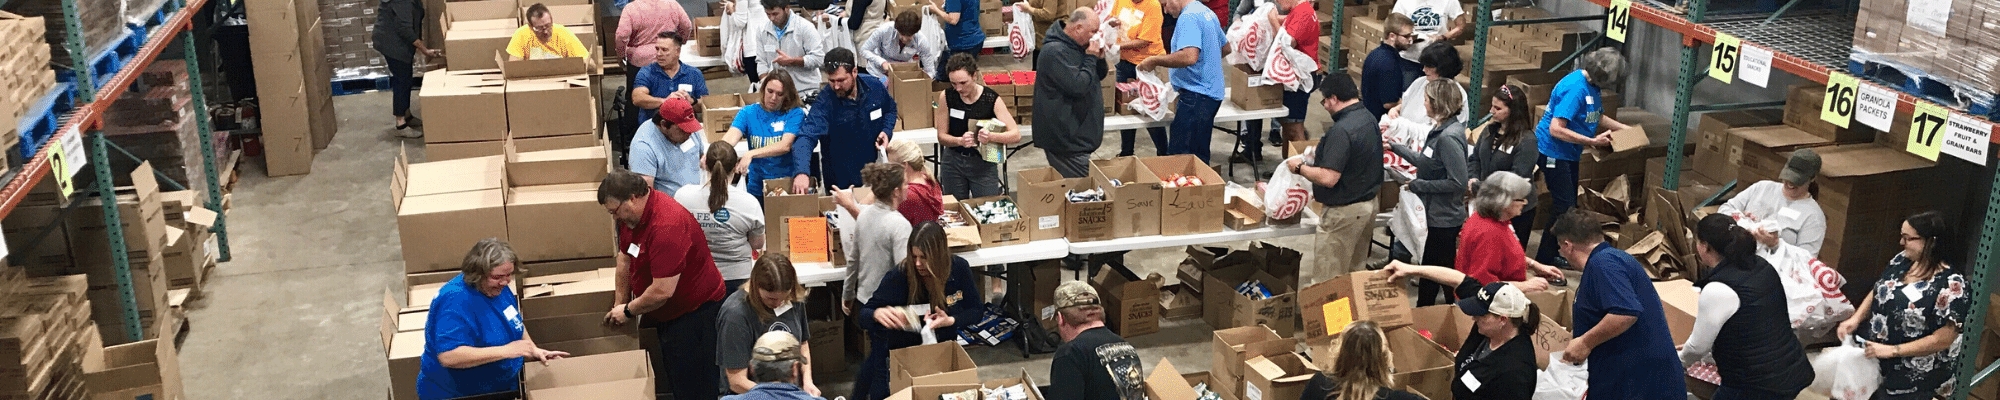 Buddy Backpacks volunteers